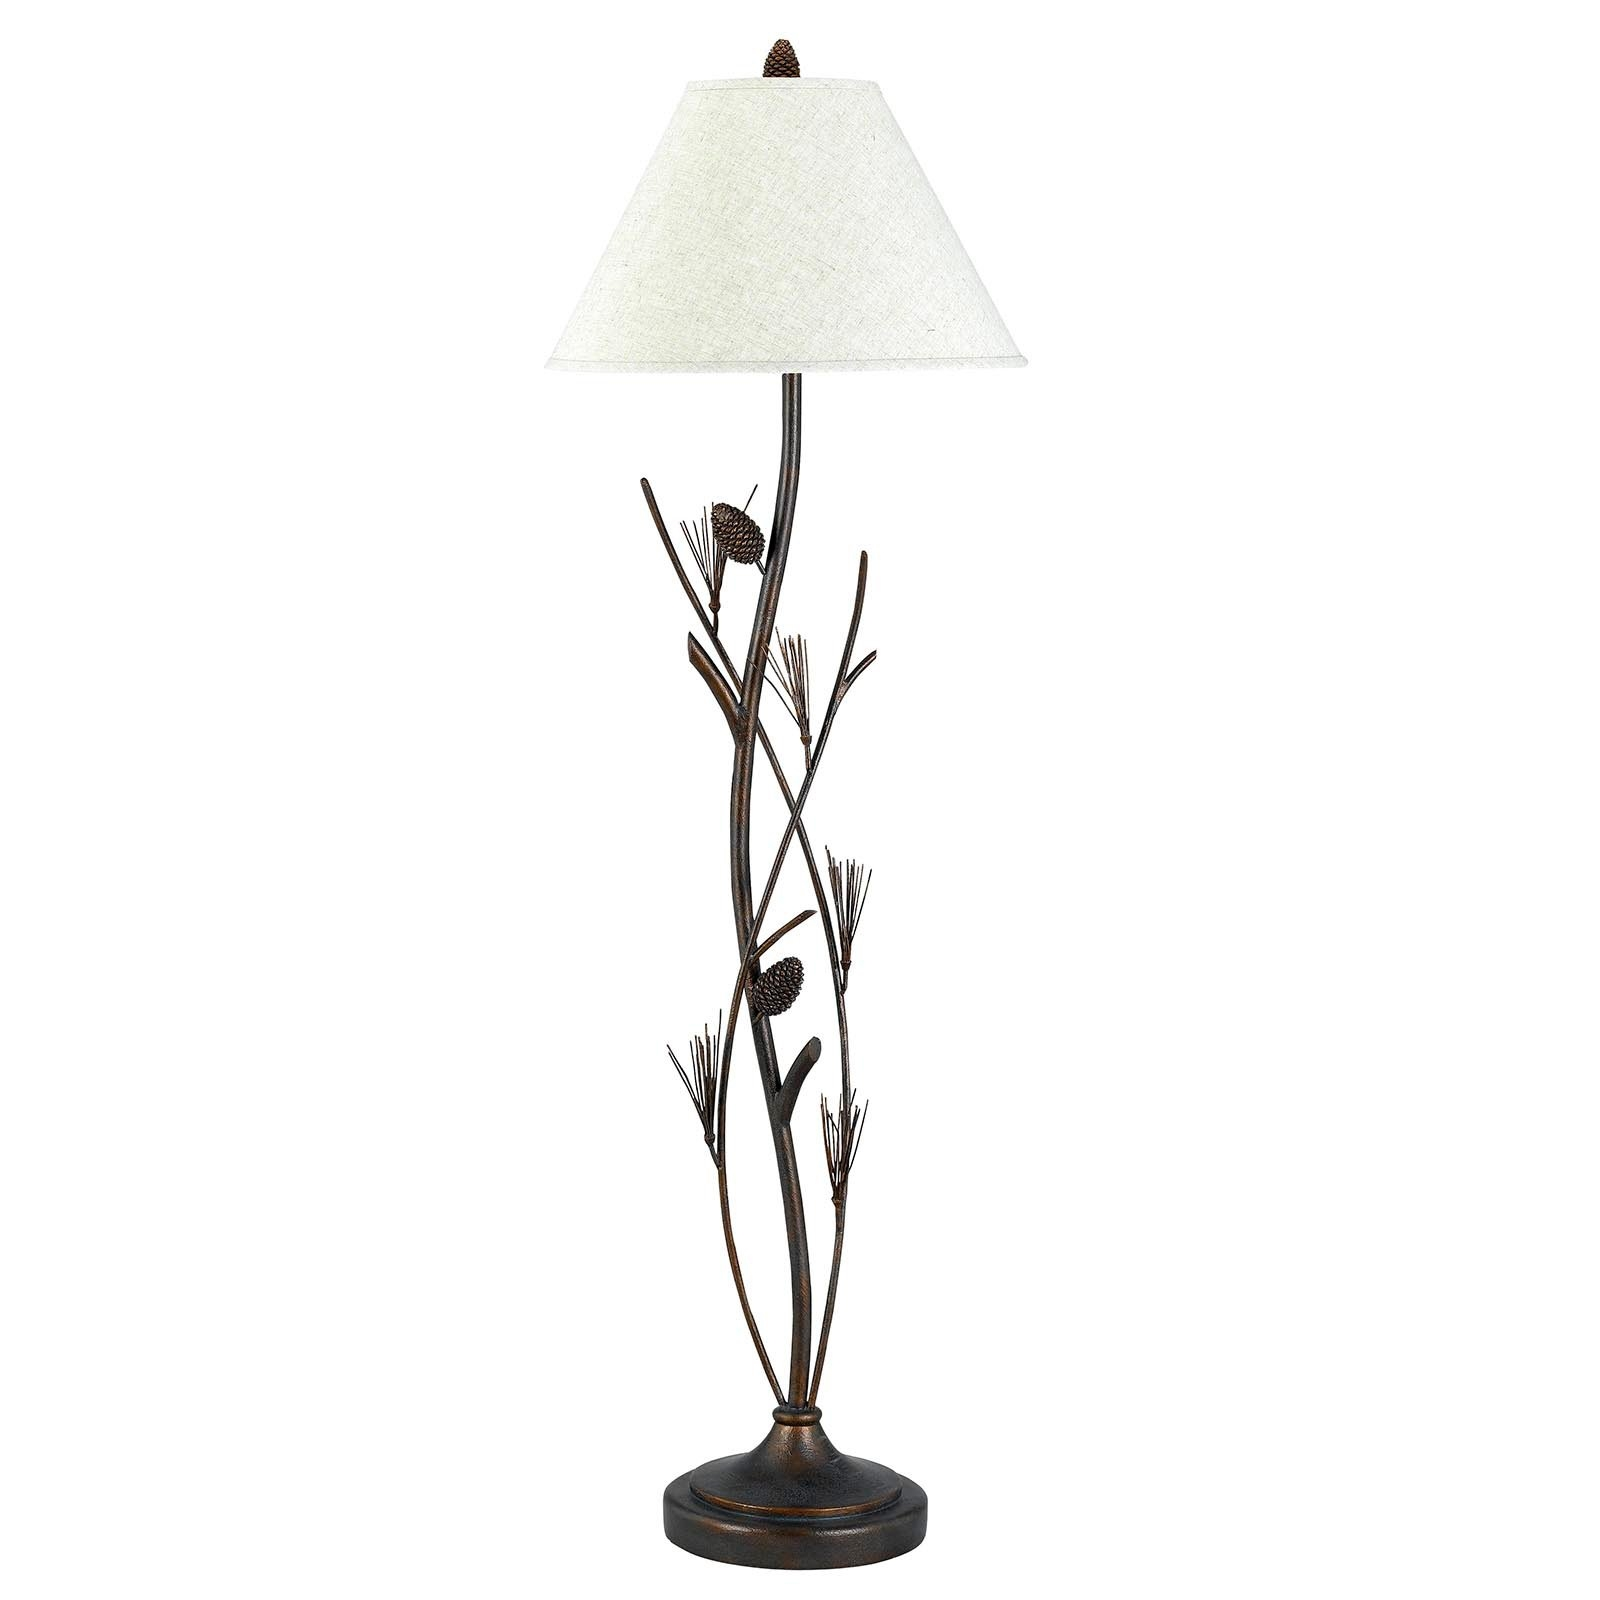 Iron Floor Lamps